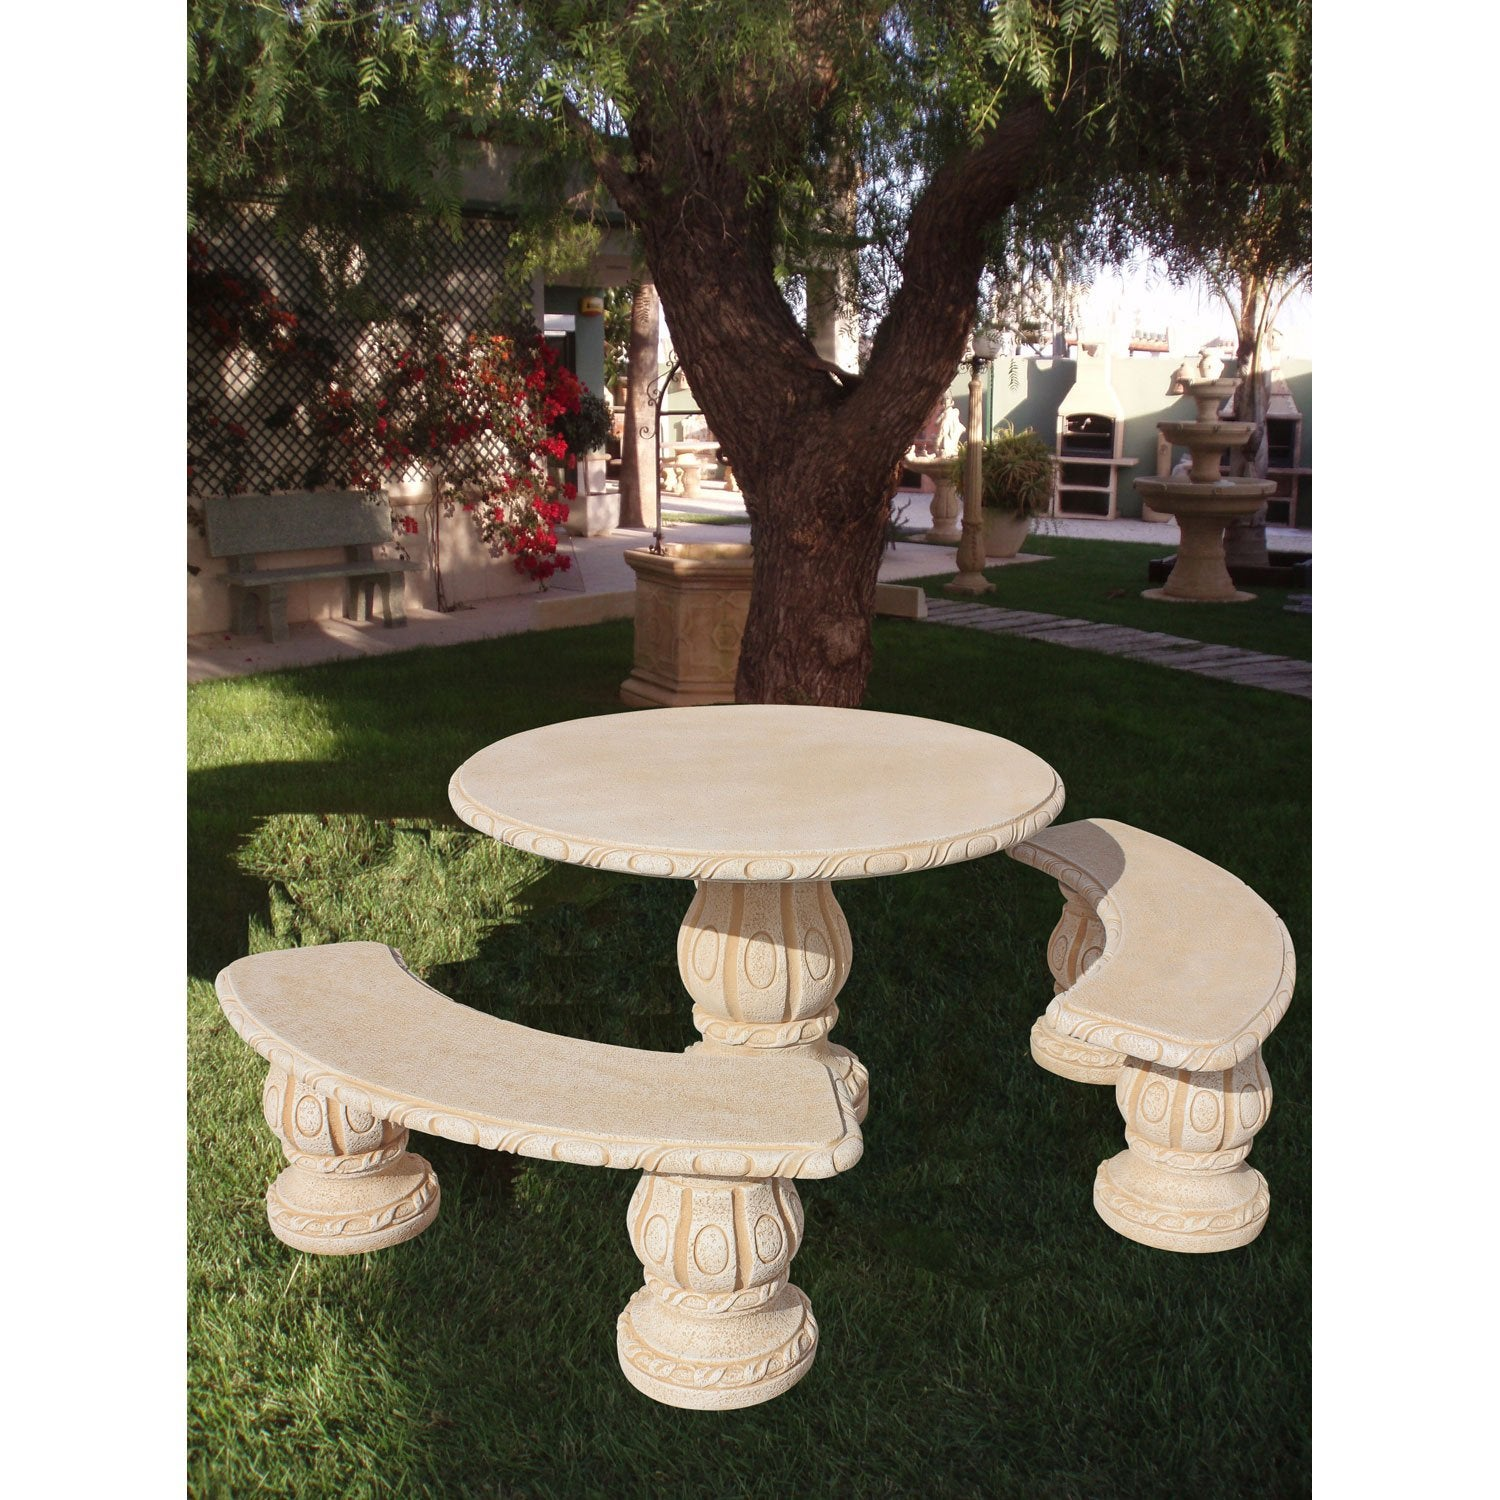 Salon bas de jardin alamo ocre 1 table ronde 2 bancs - Salon de jardin table ronde ...